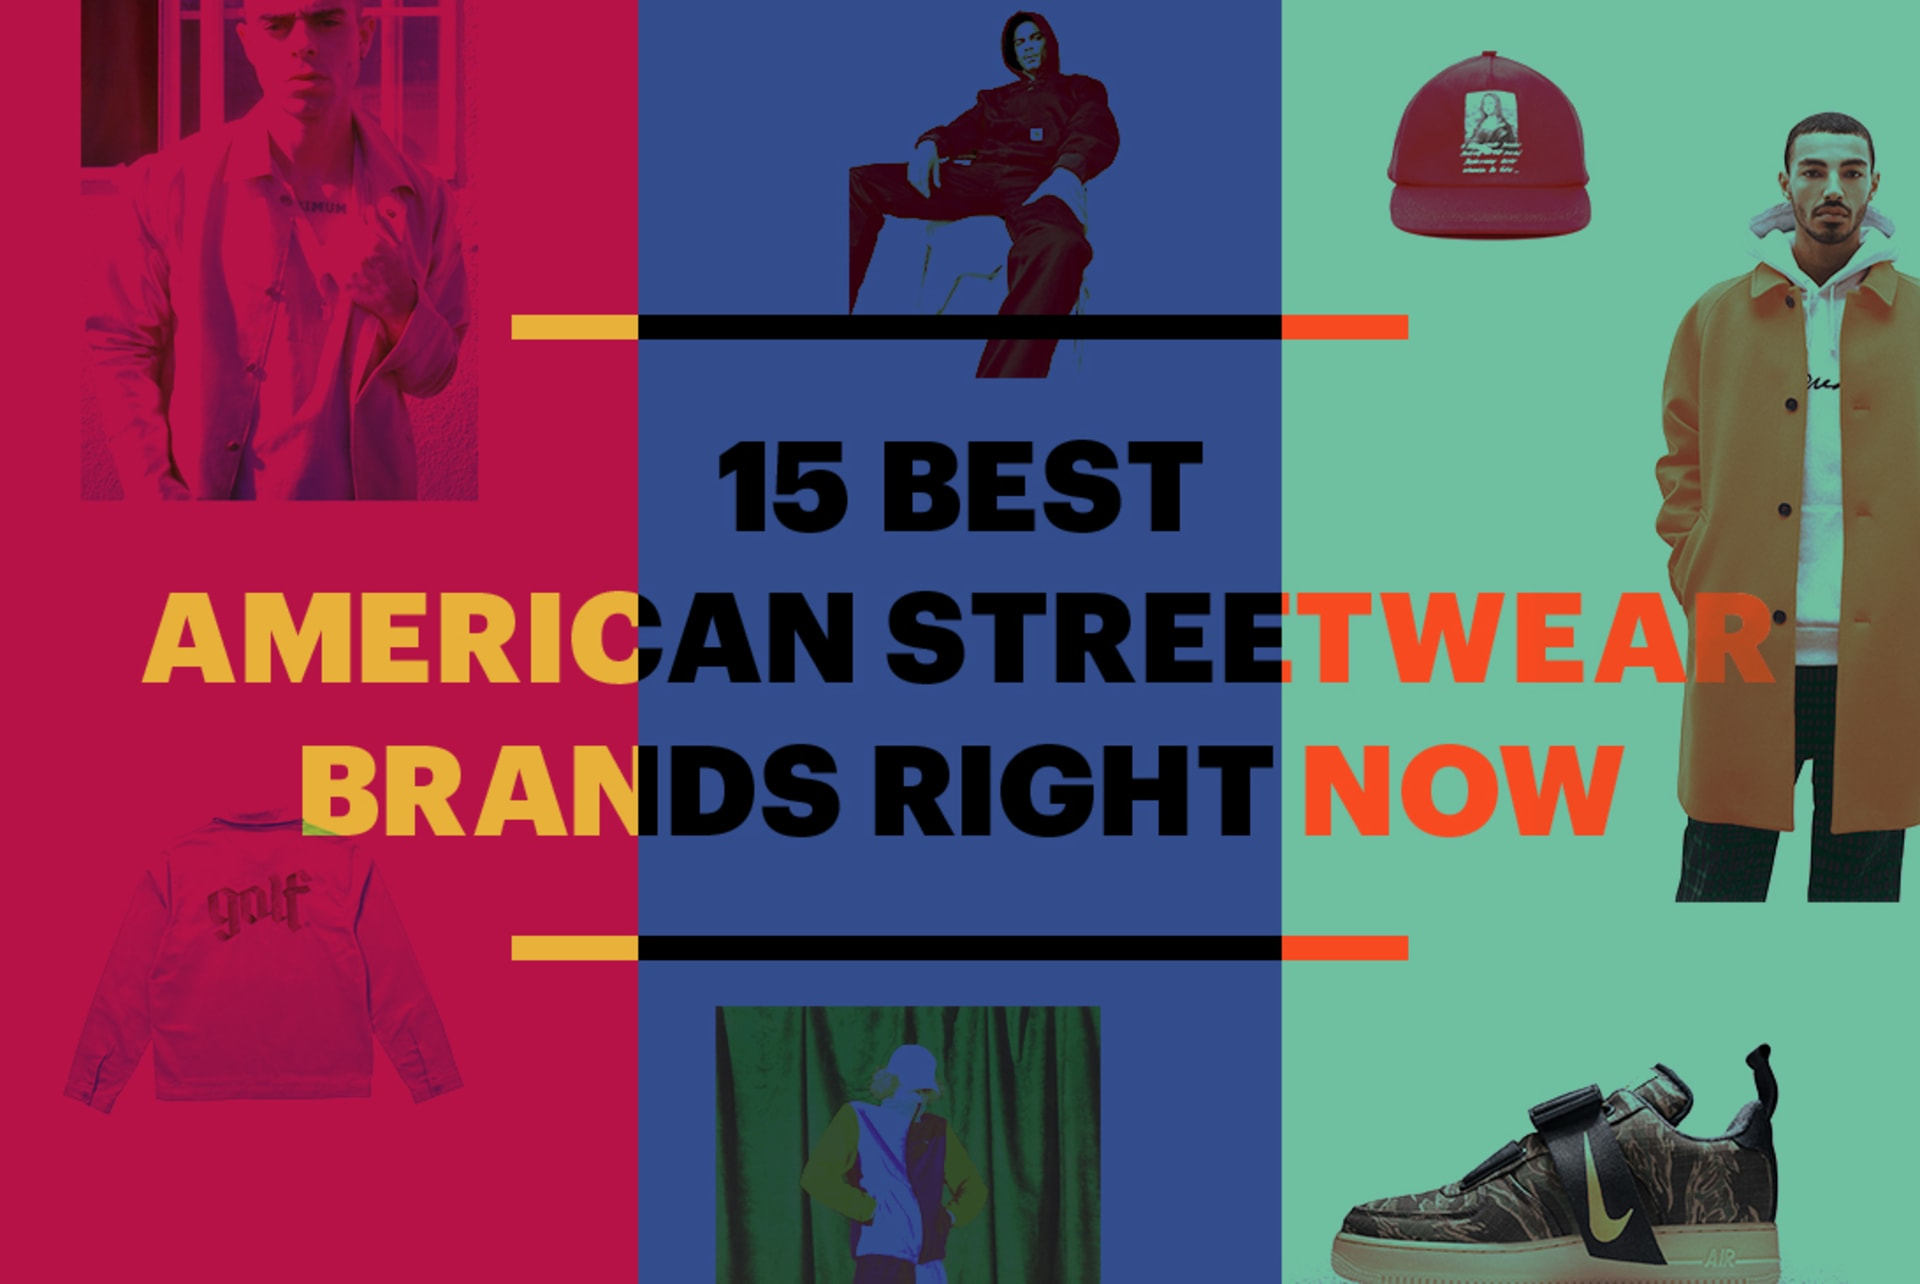 Streetwear Brands: Top American Brands to Know Right Now